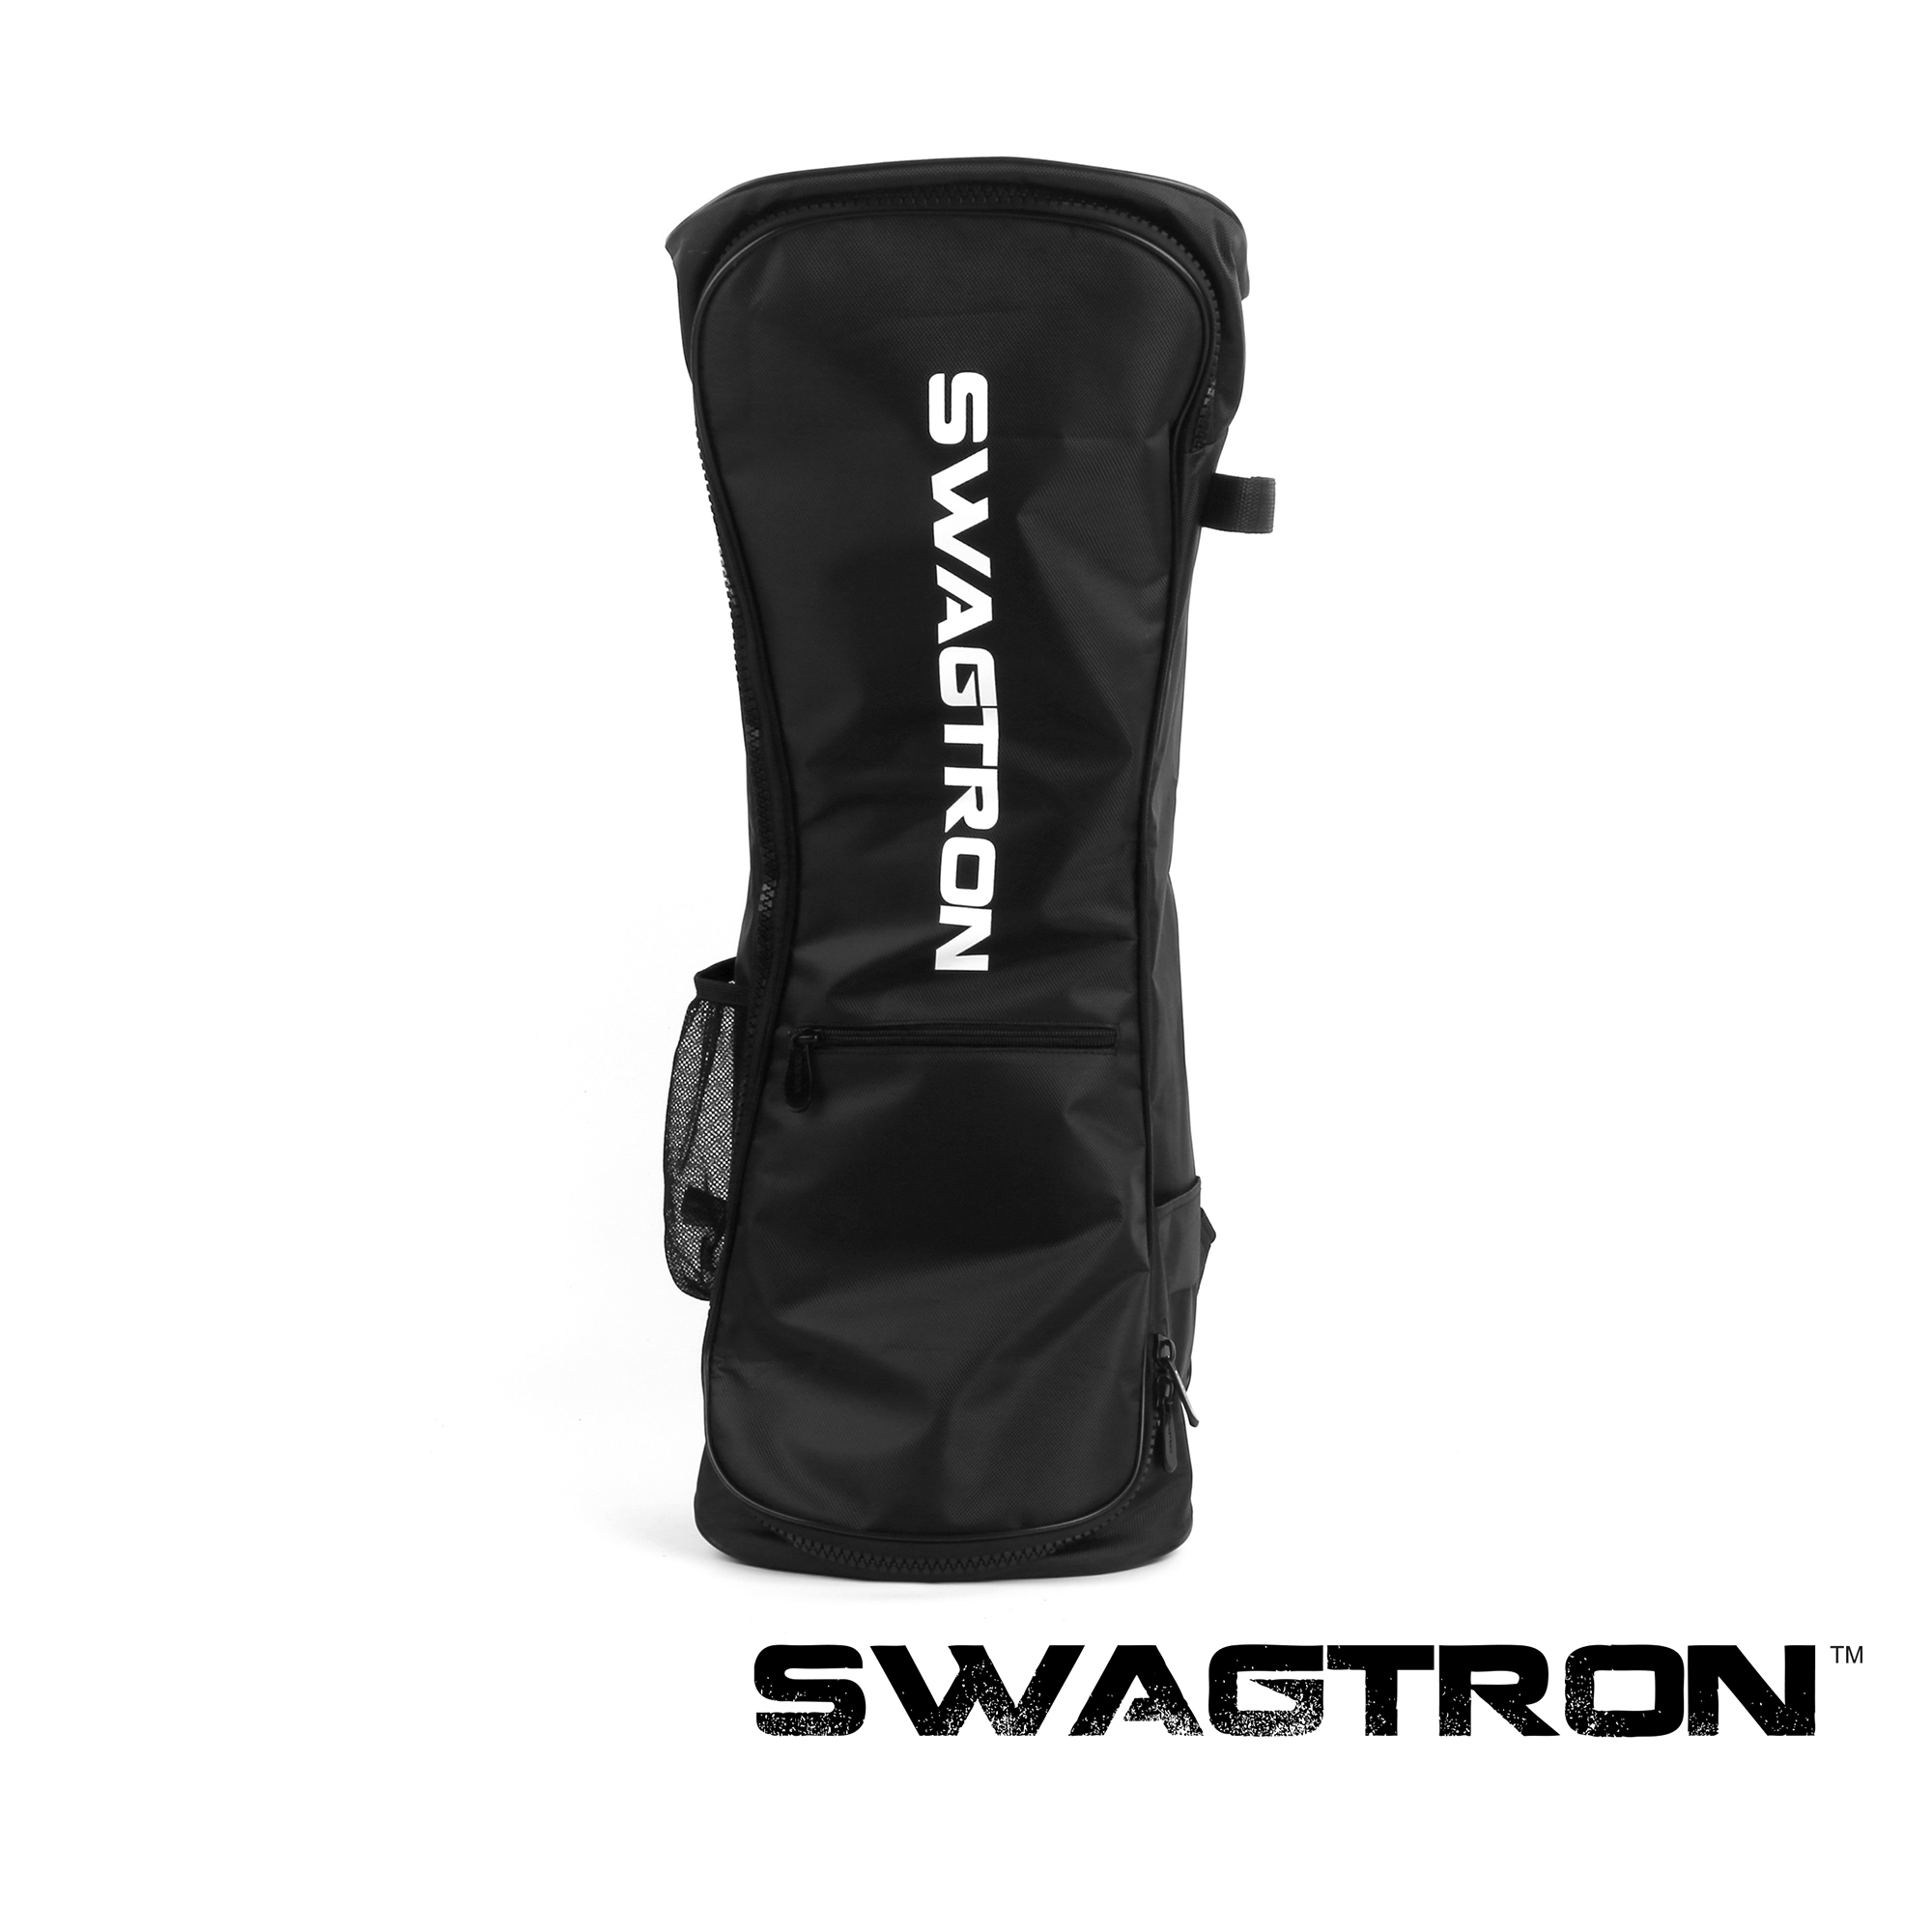 Swagtron Hoverboard Carrying Bag Makes It Easier To Bring